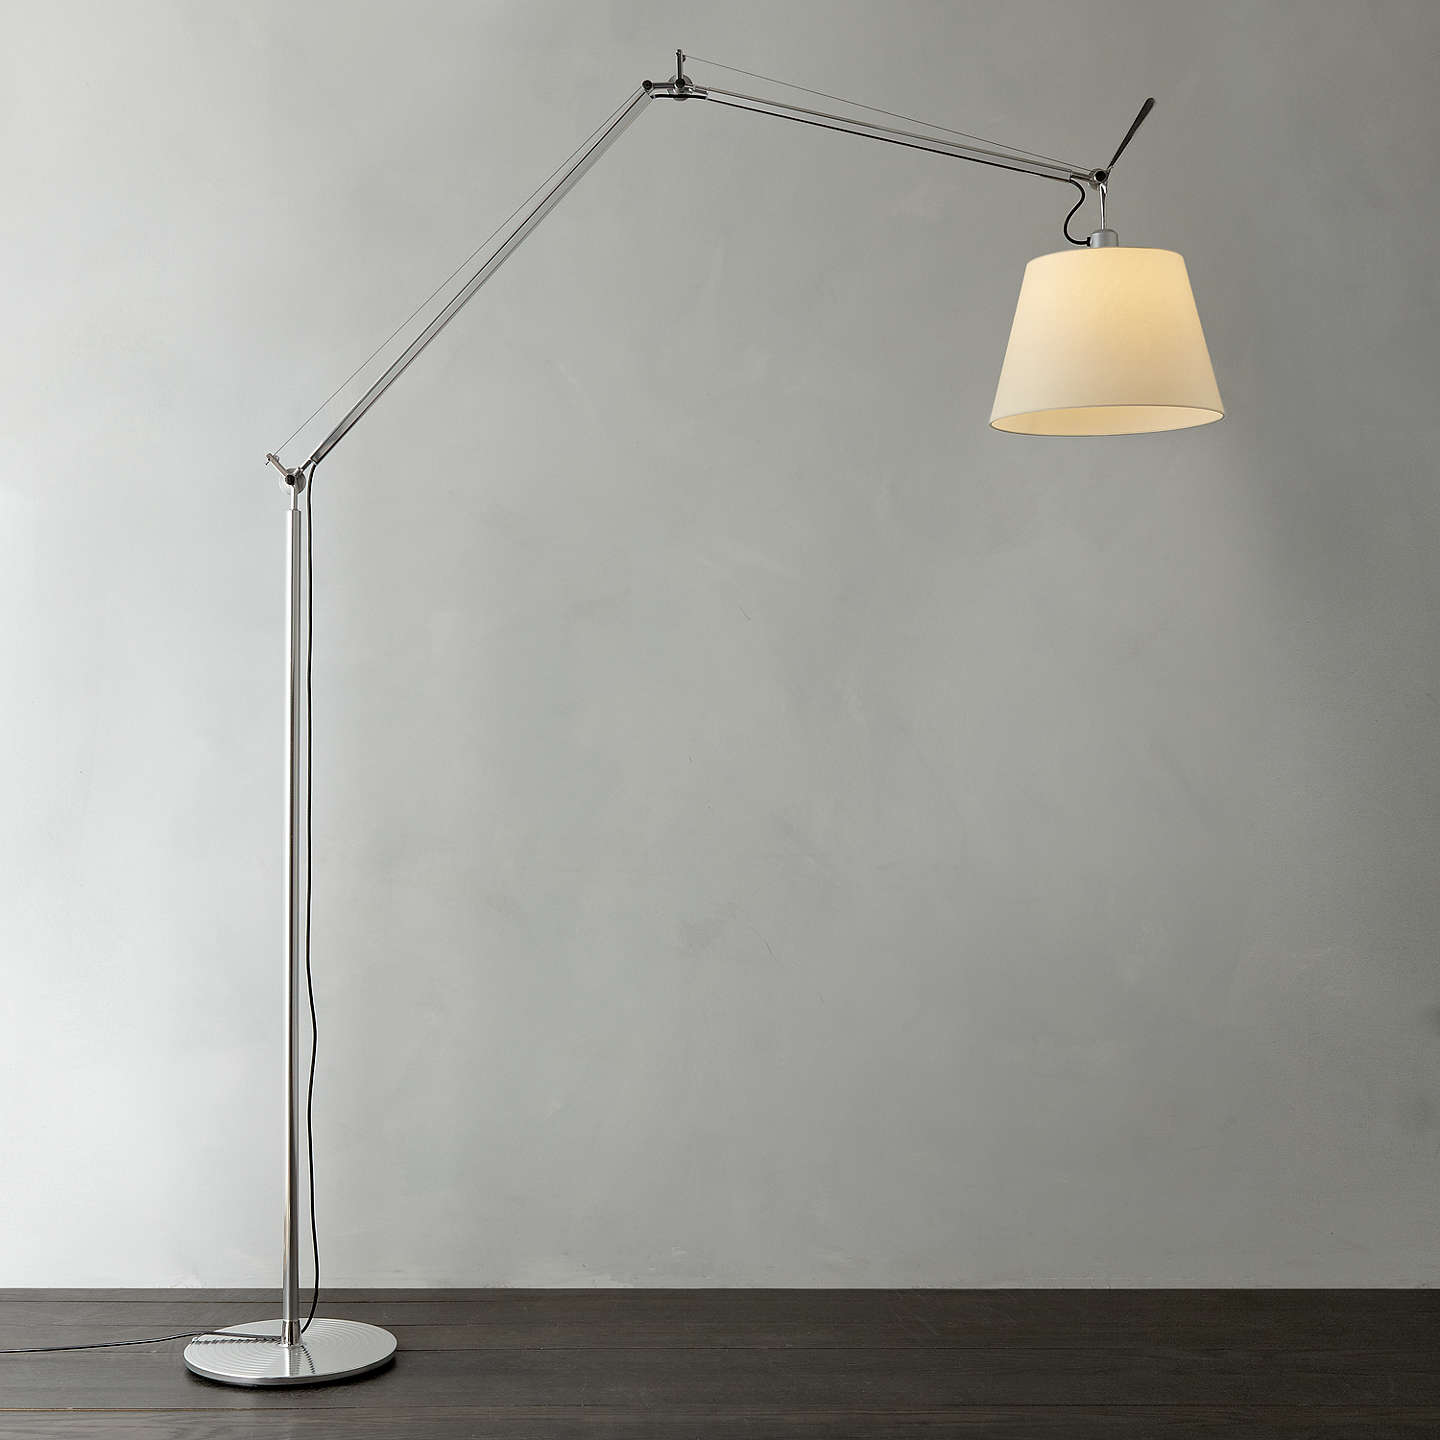 artemide tolomeo mega terra floor lamp at john lewis. Black Bedroom Furniture Sets. Home Design Ideas